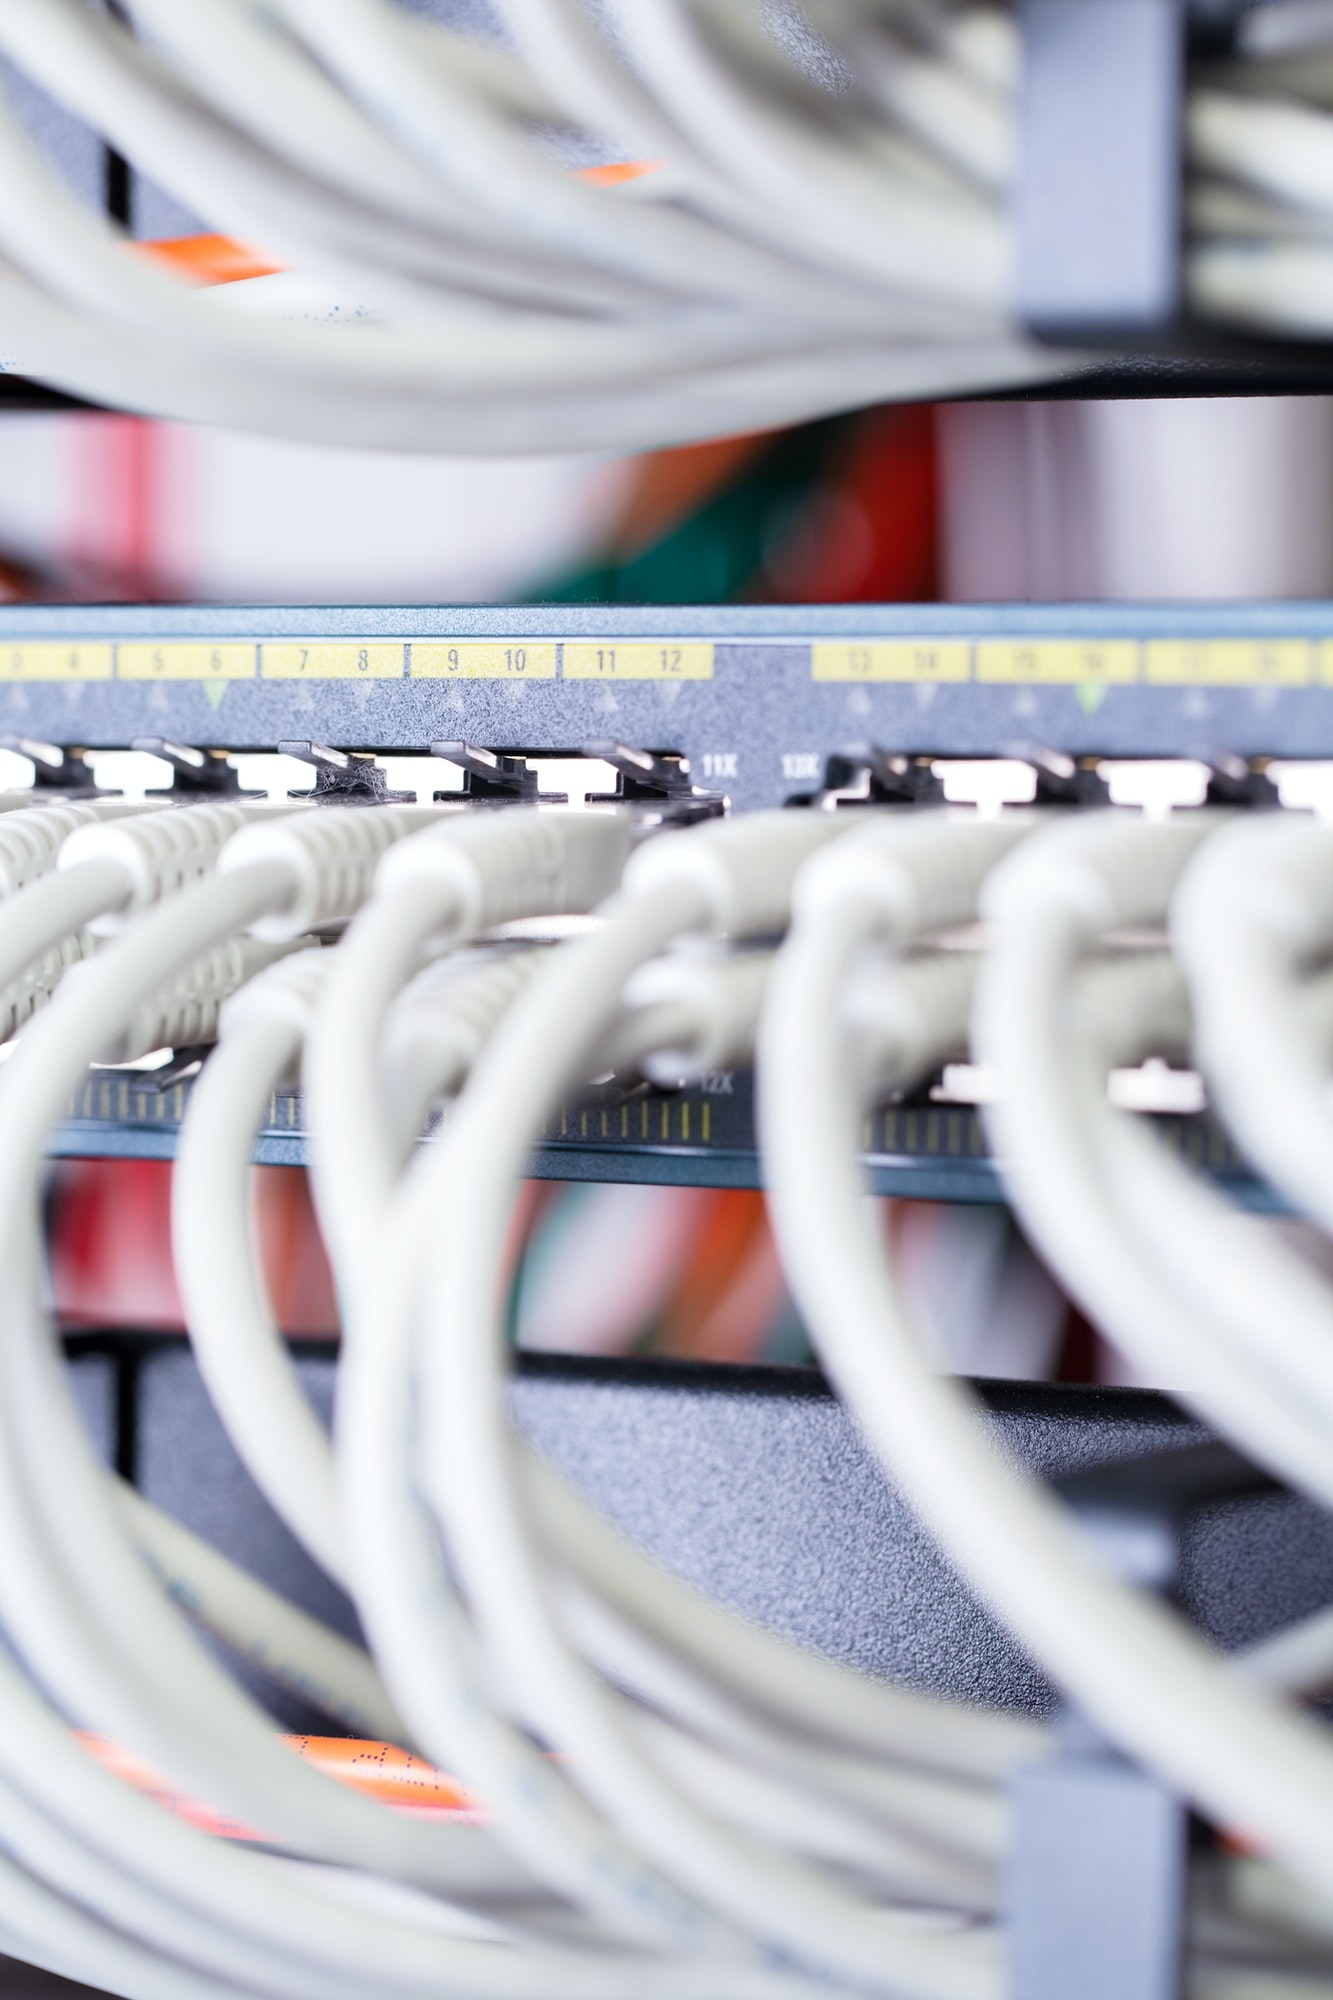 Close-up of gigabit network switch and cables in datacenter